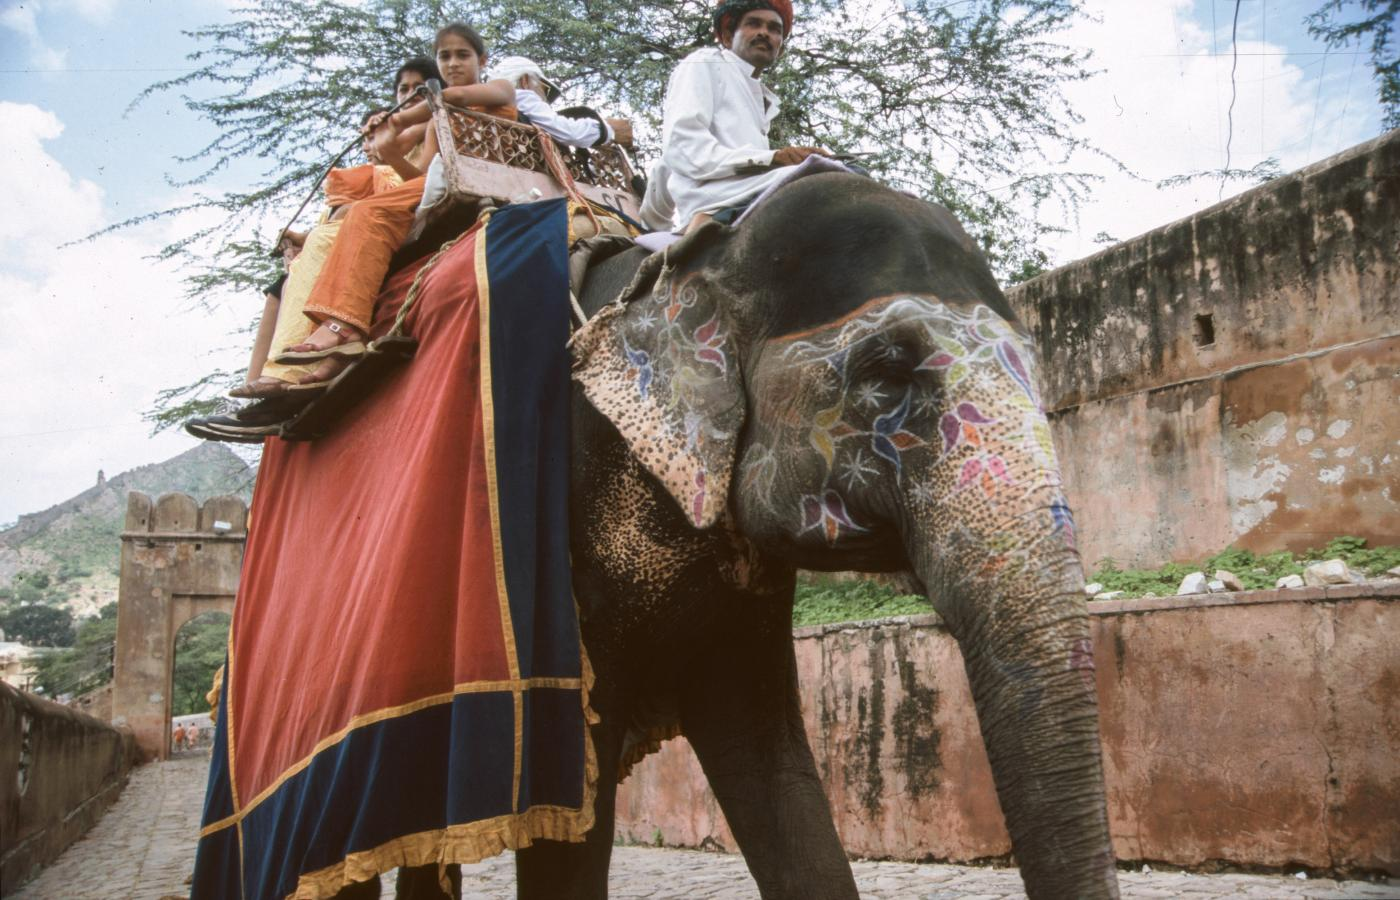 riding-an-elephant-jaipur-2003